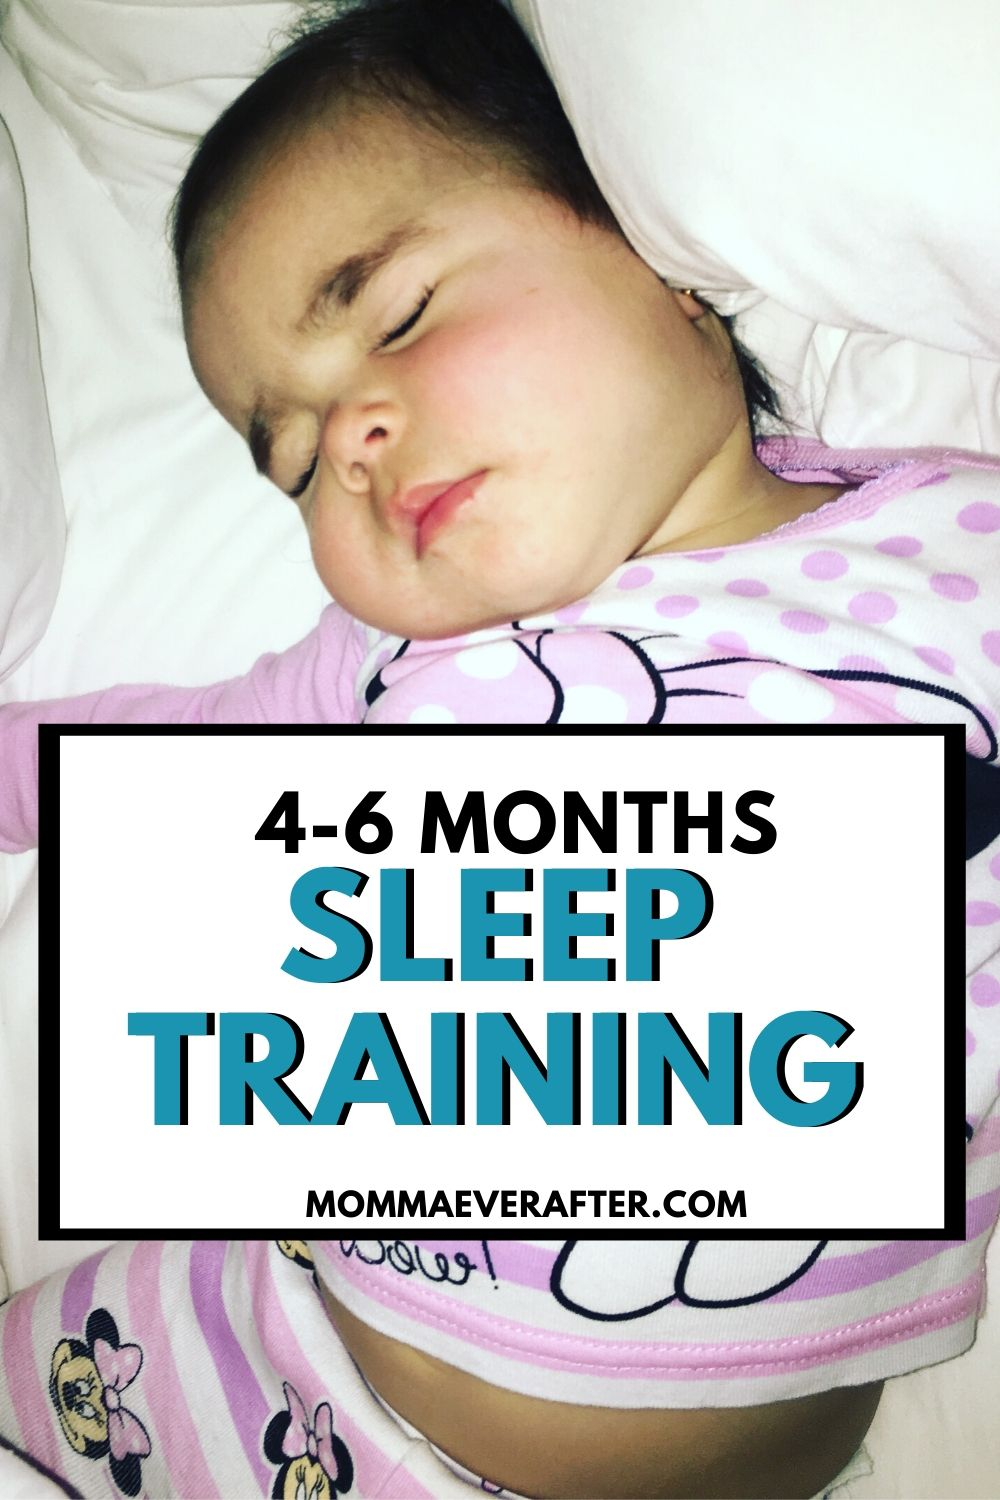 sleep training 4-6 months